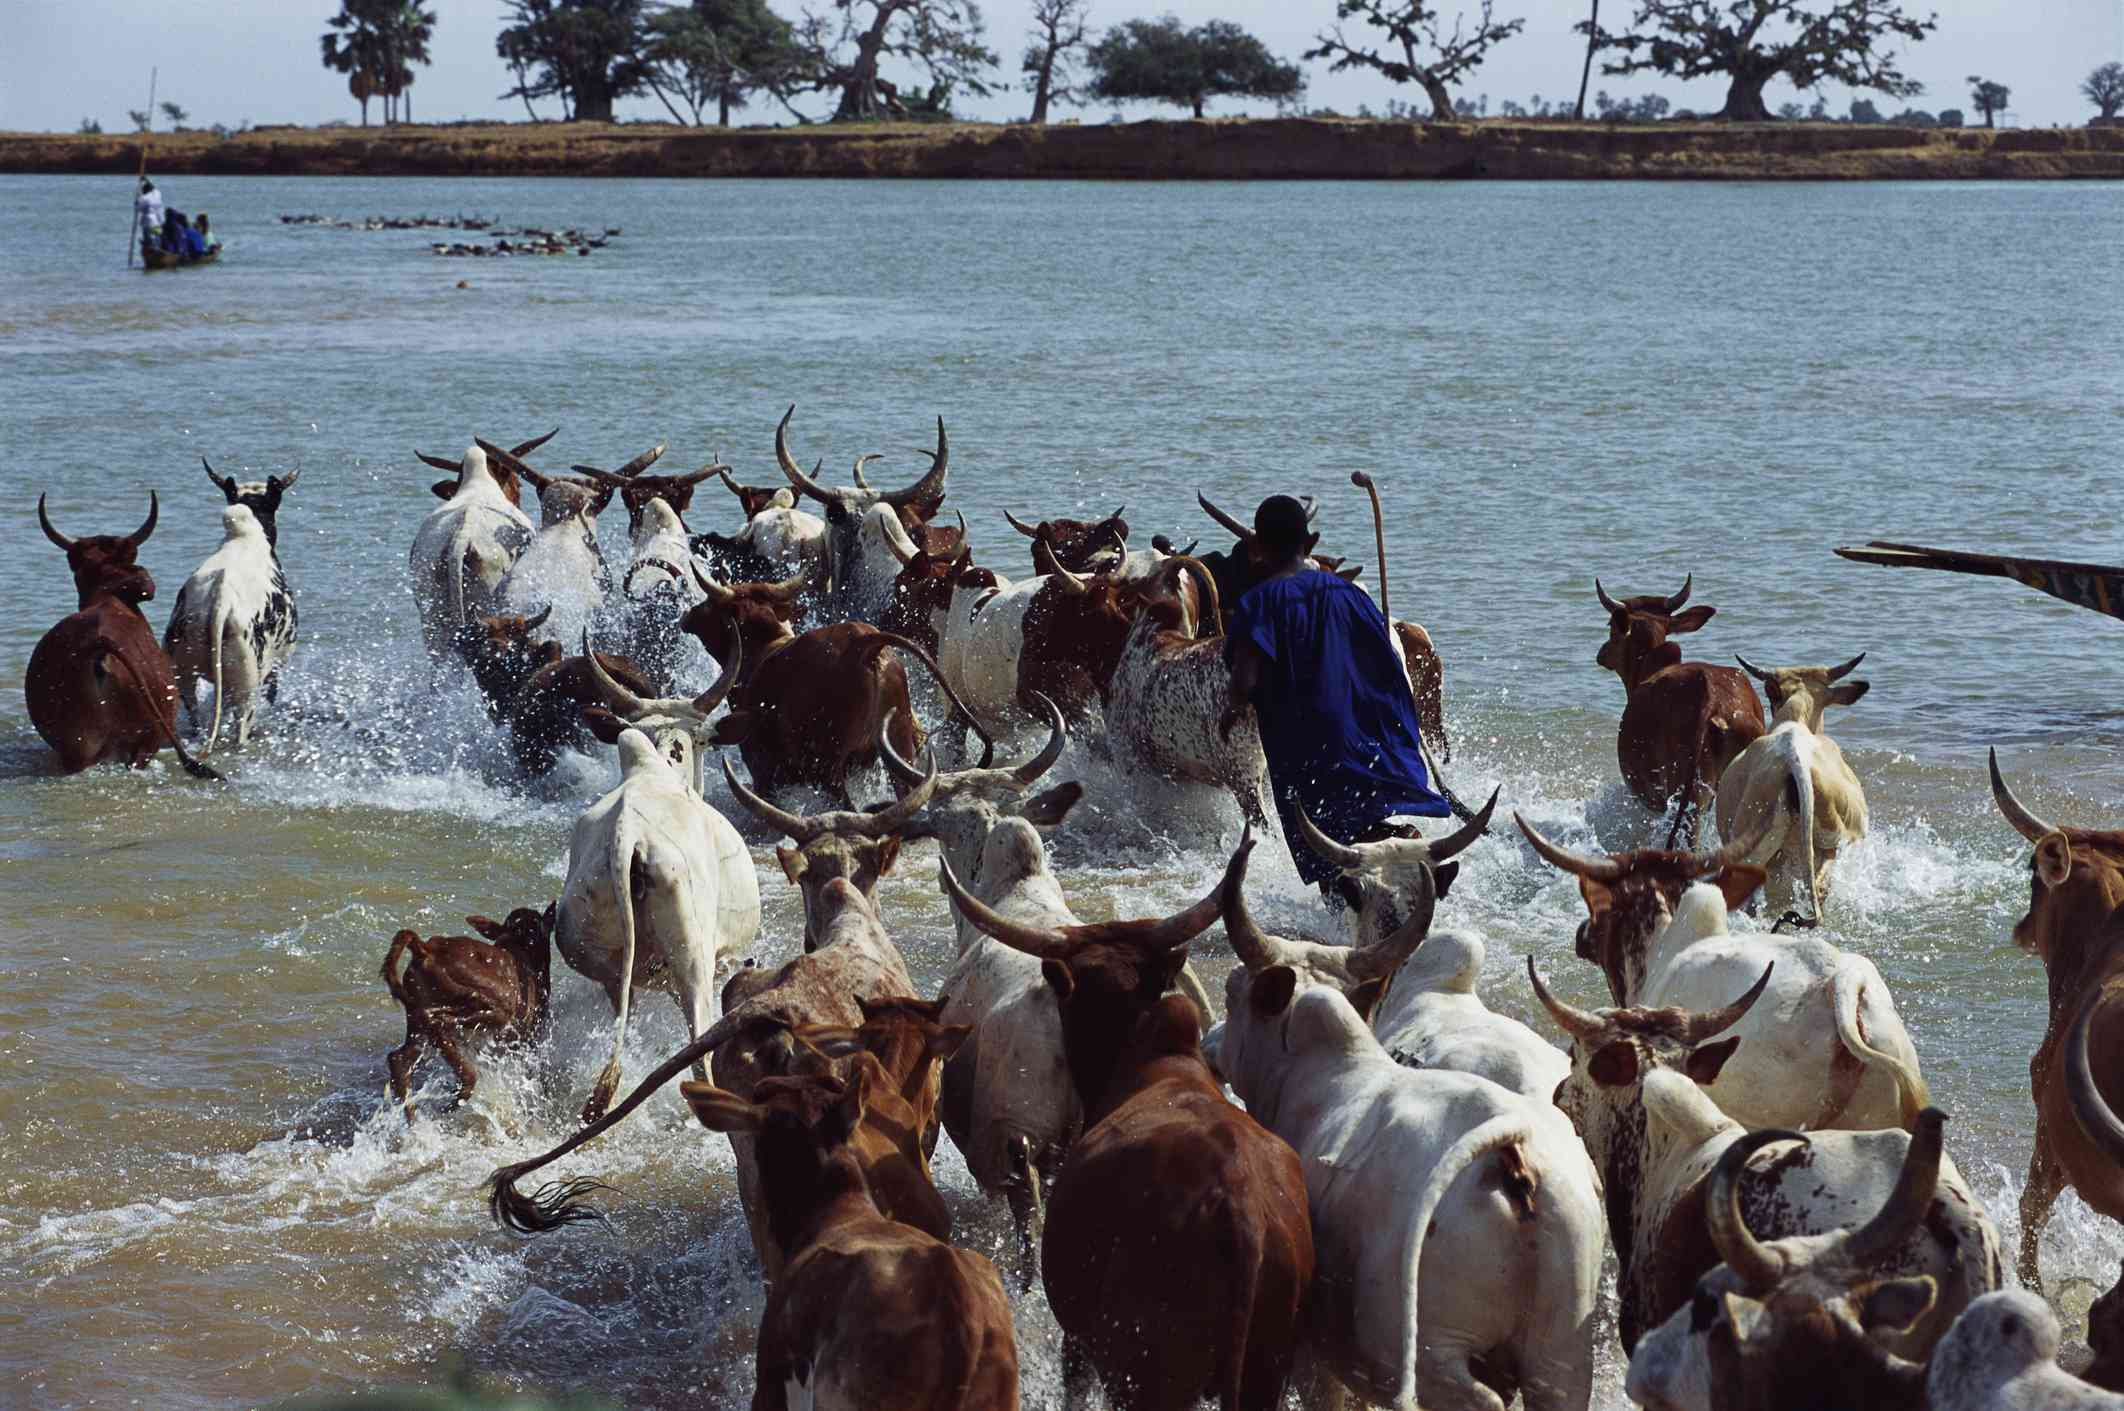 A herd of cattle with horns heads into a body of water